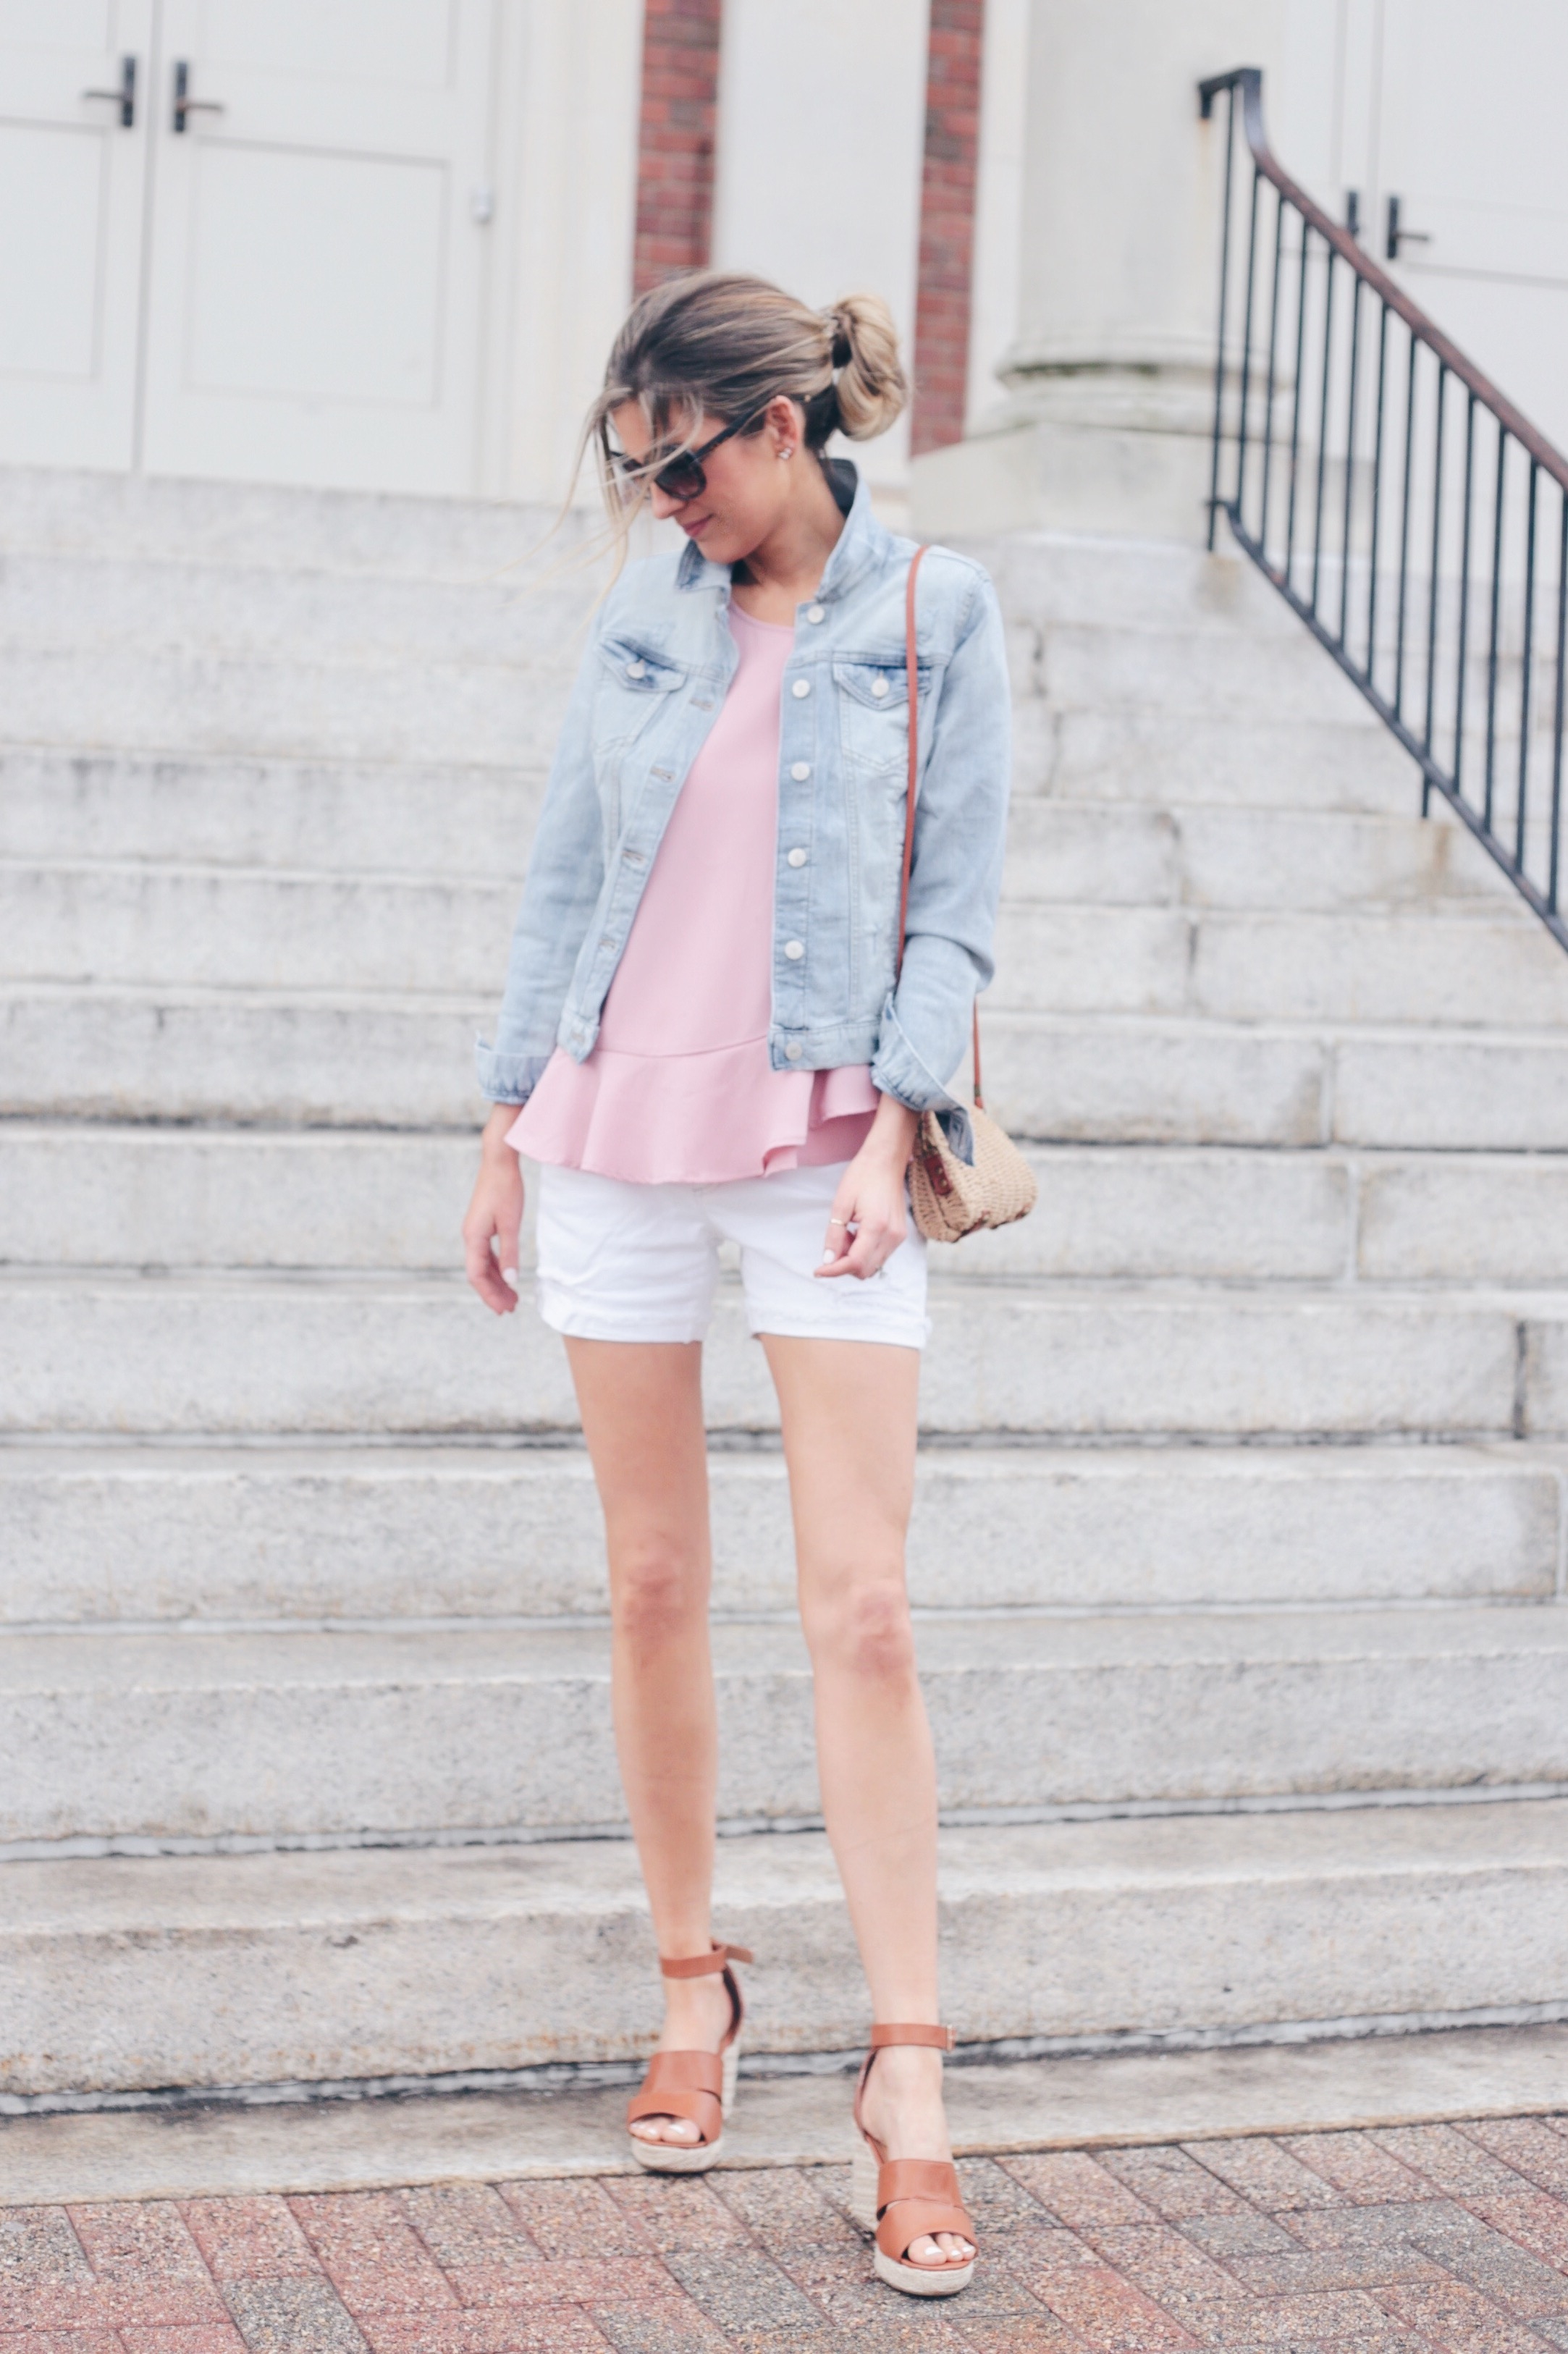 Spring Date Night Outfit Ideas | Jean Jacket and White SHorts